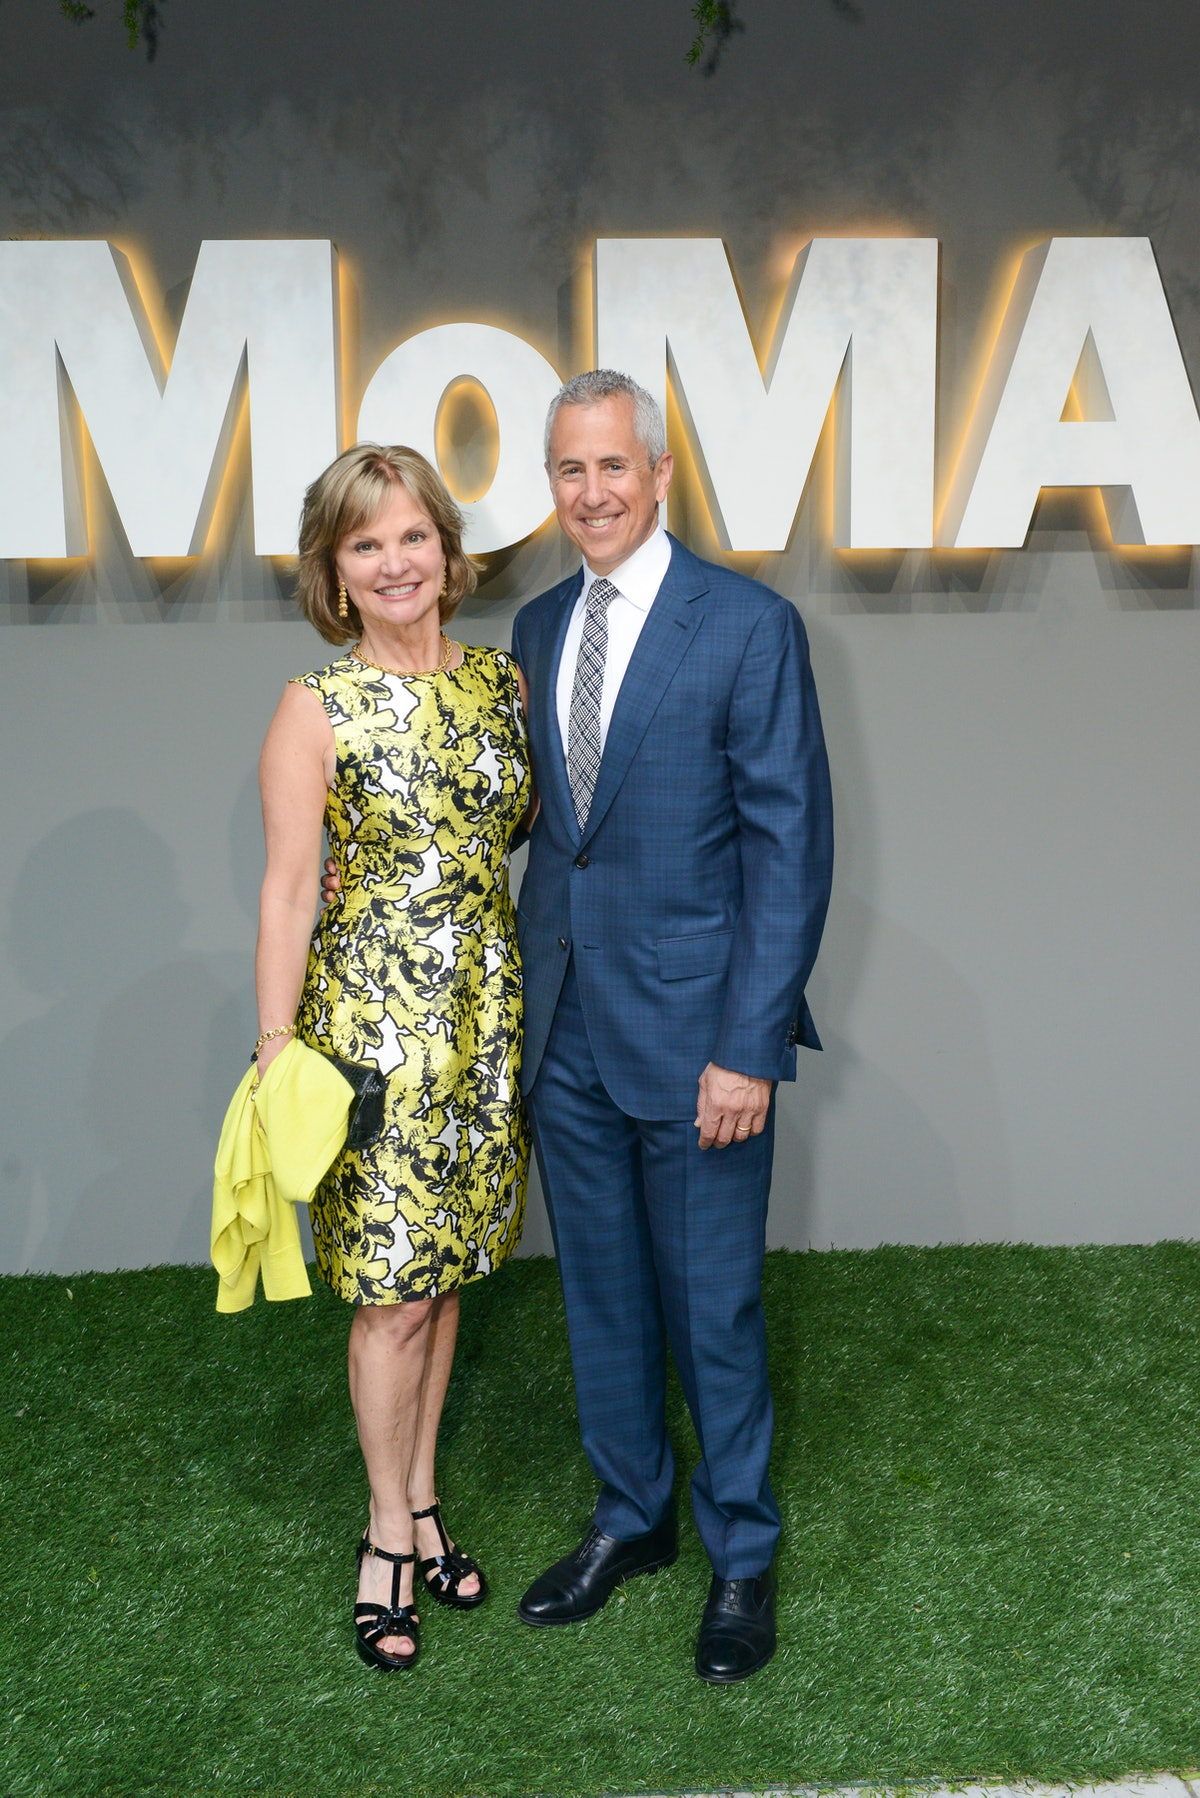 Audrey and Danny Meyer